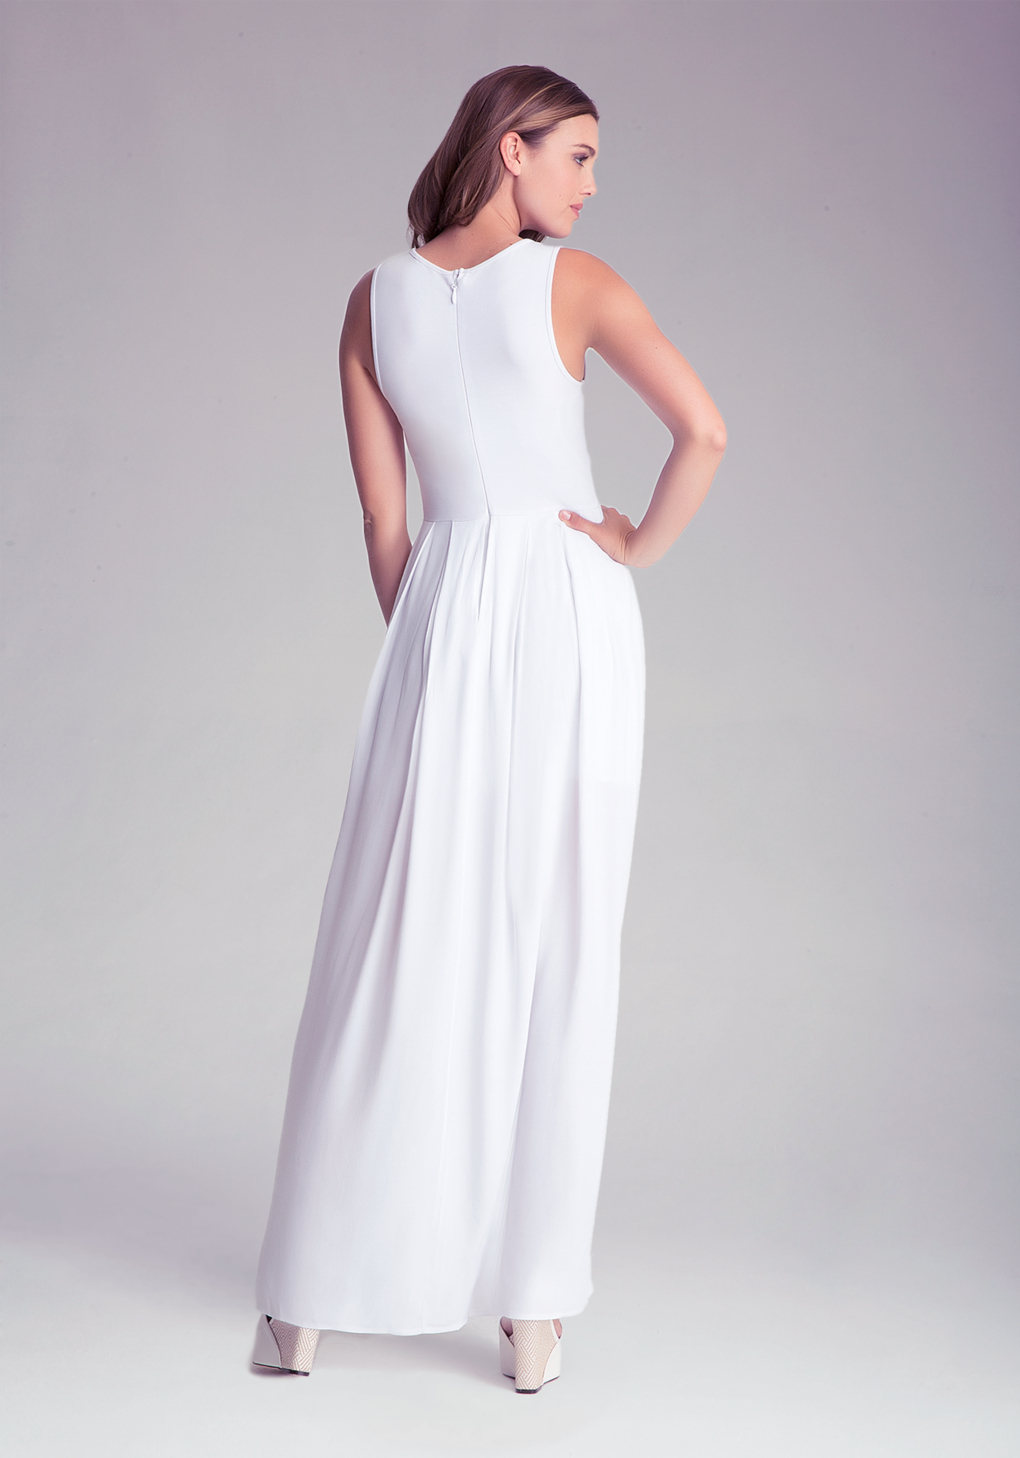 88c31de595a Bebe Embellished Slit Maxi Dress in White - Lyst